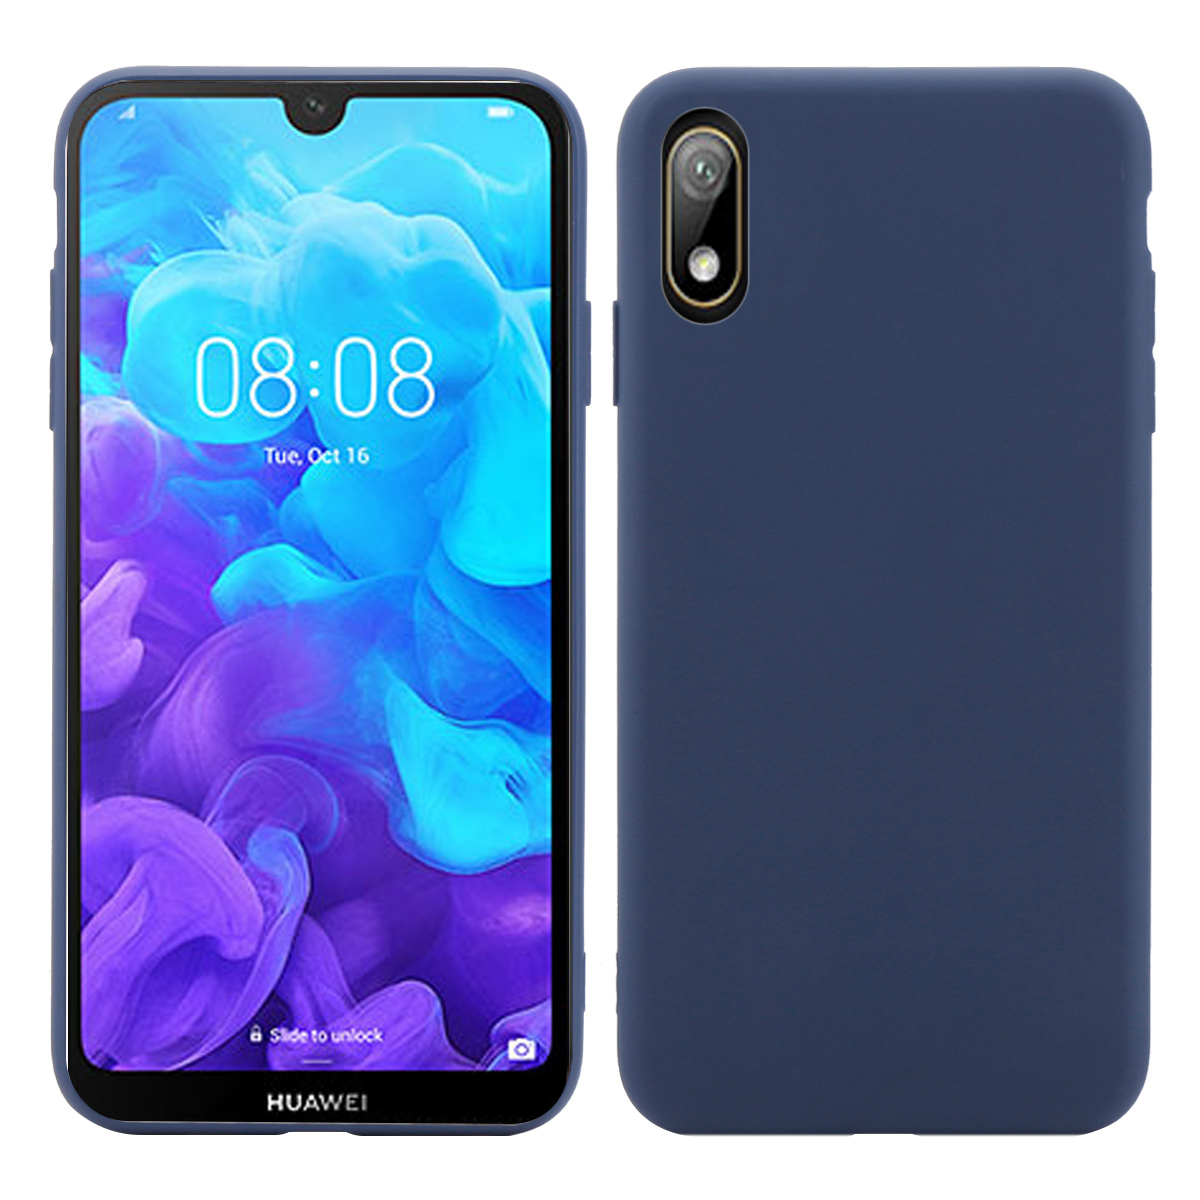 For <font><b>Huawei</b></font> Y5 <font><b>2019</b></font> <font><b>Y6</b></font> <font><b>2019</b></font> <font><b>Case</b></font> Soft Silicone Slim Candy Color Matte TPU <font><b>Cover</b></font> For <font><b>Huawei</b></font> <font><b>Y6</b></font> Pro <font><b>2019</b></font> Y9 <font><b>2019</b></font> <font><b>Case</b></font> Shockproof image